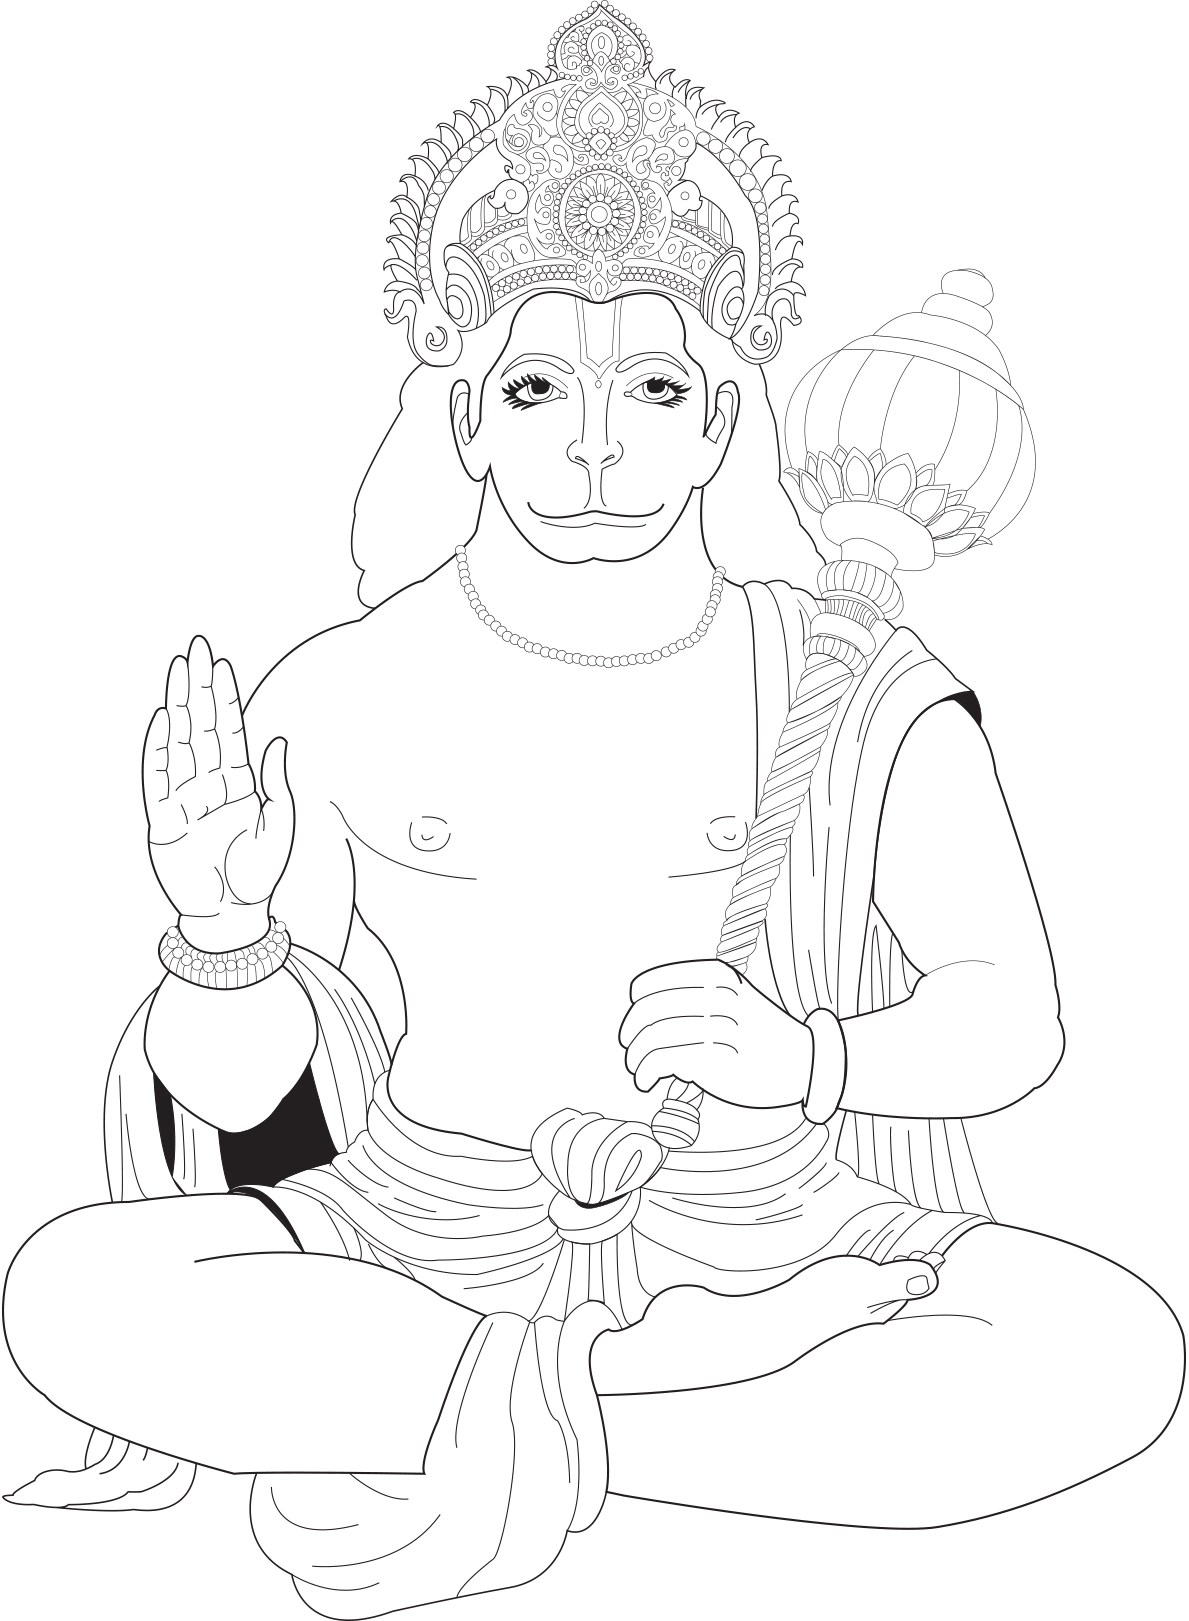 Hanuman India Bollywood Coloring Pages For Adults Justcolor